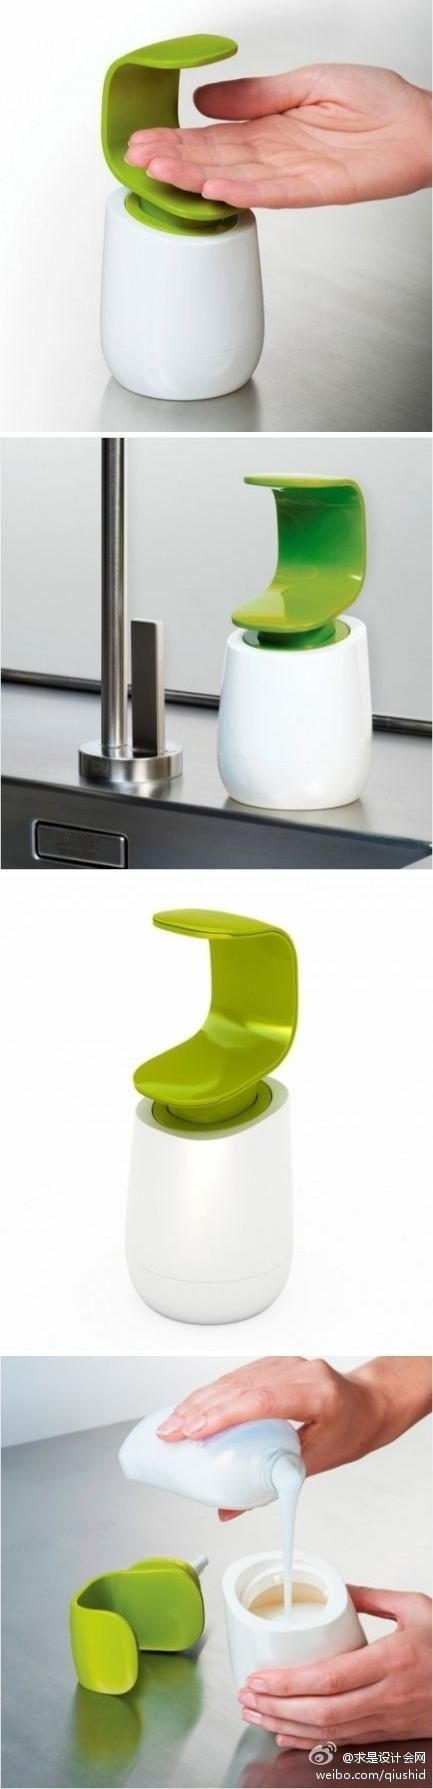 <b>No gizmo gadgetry here.</b> These products are awesome simply because they were designed that way.